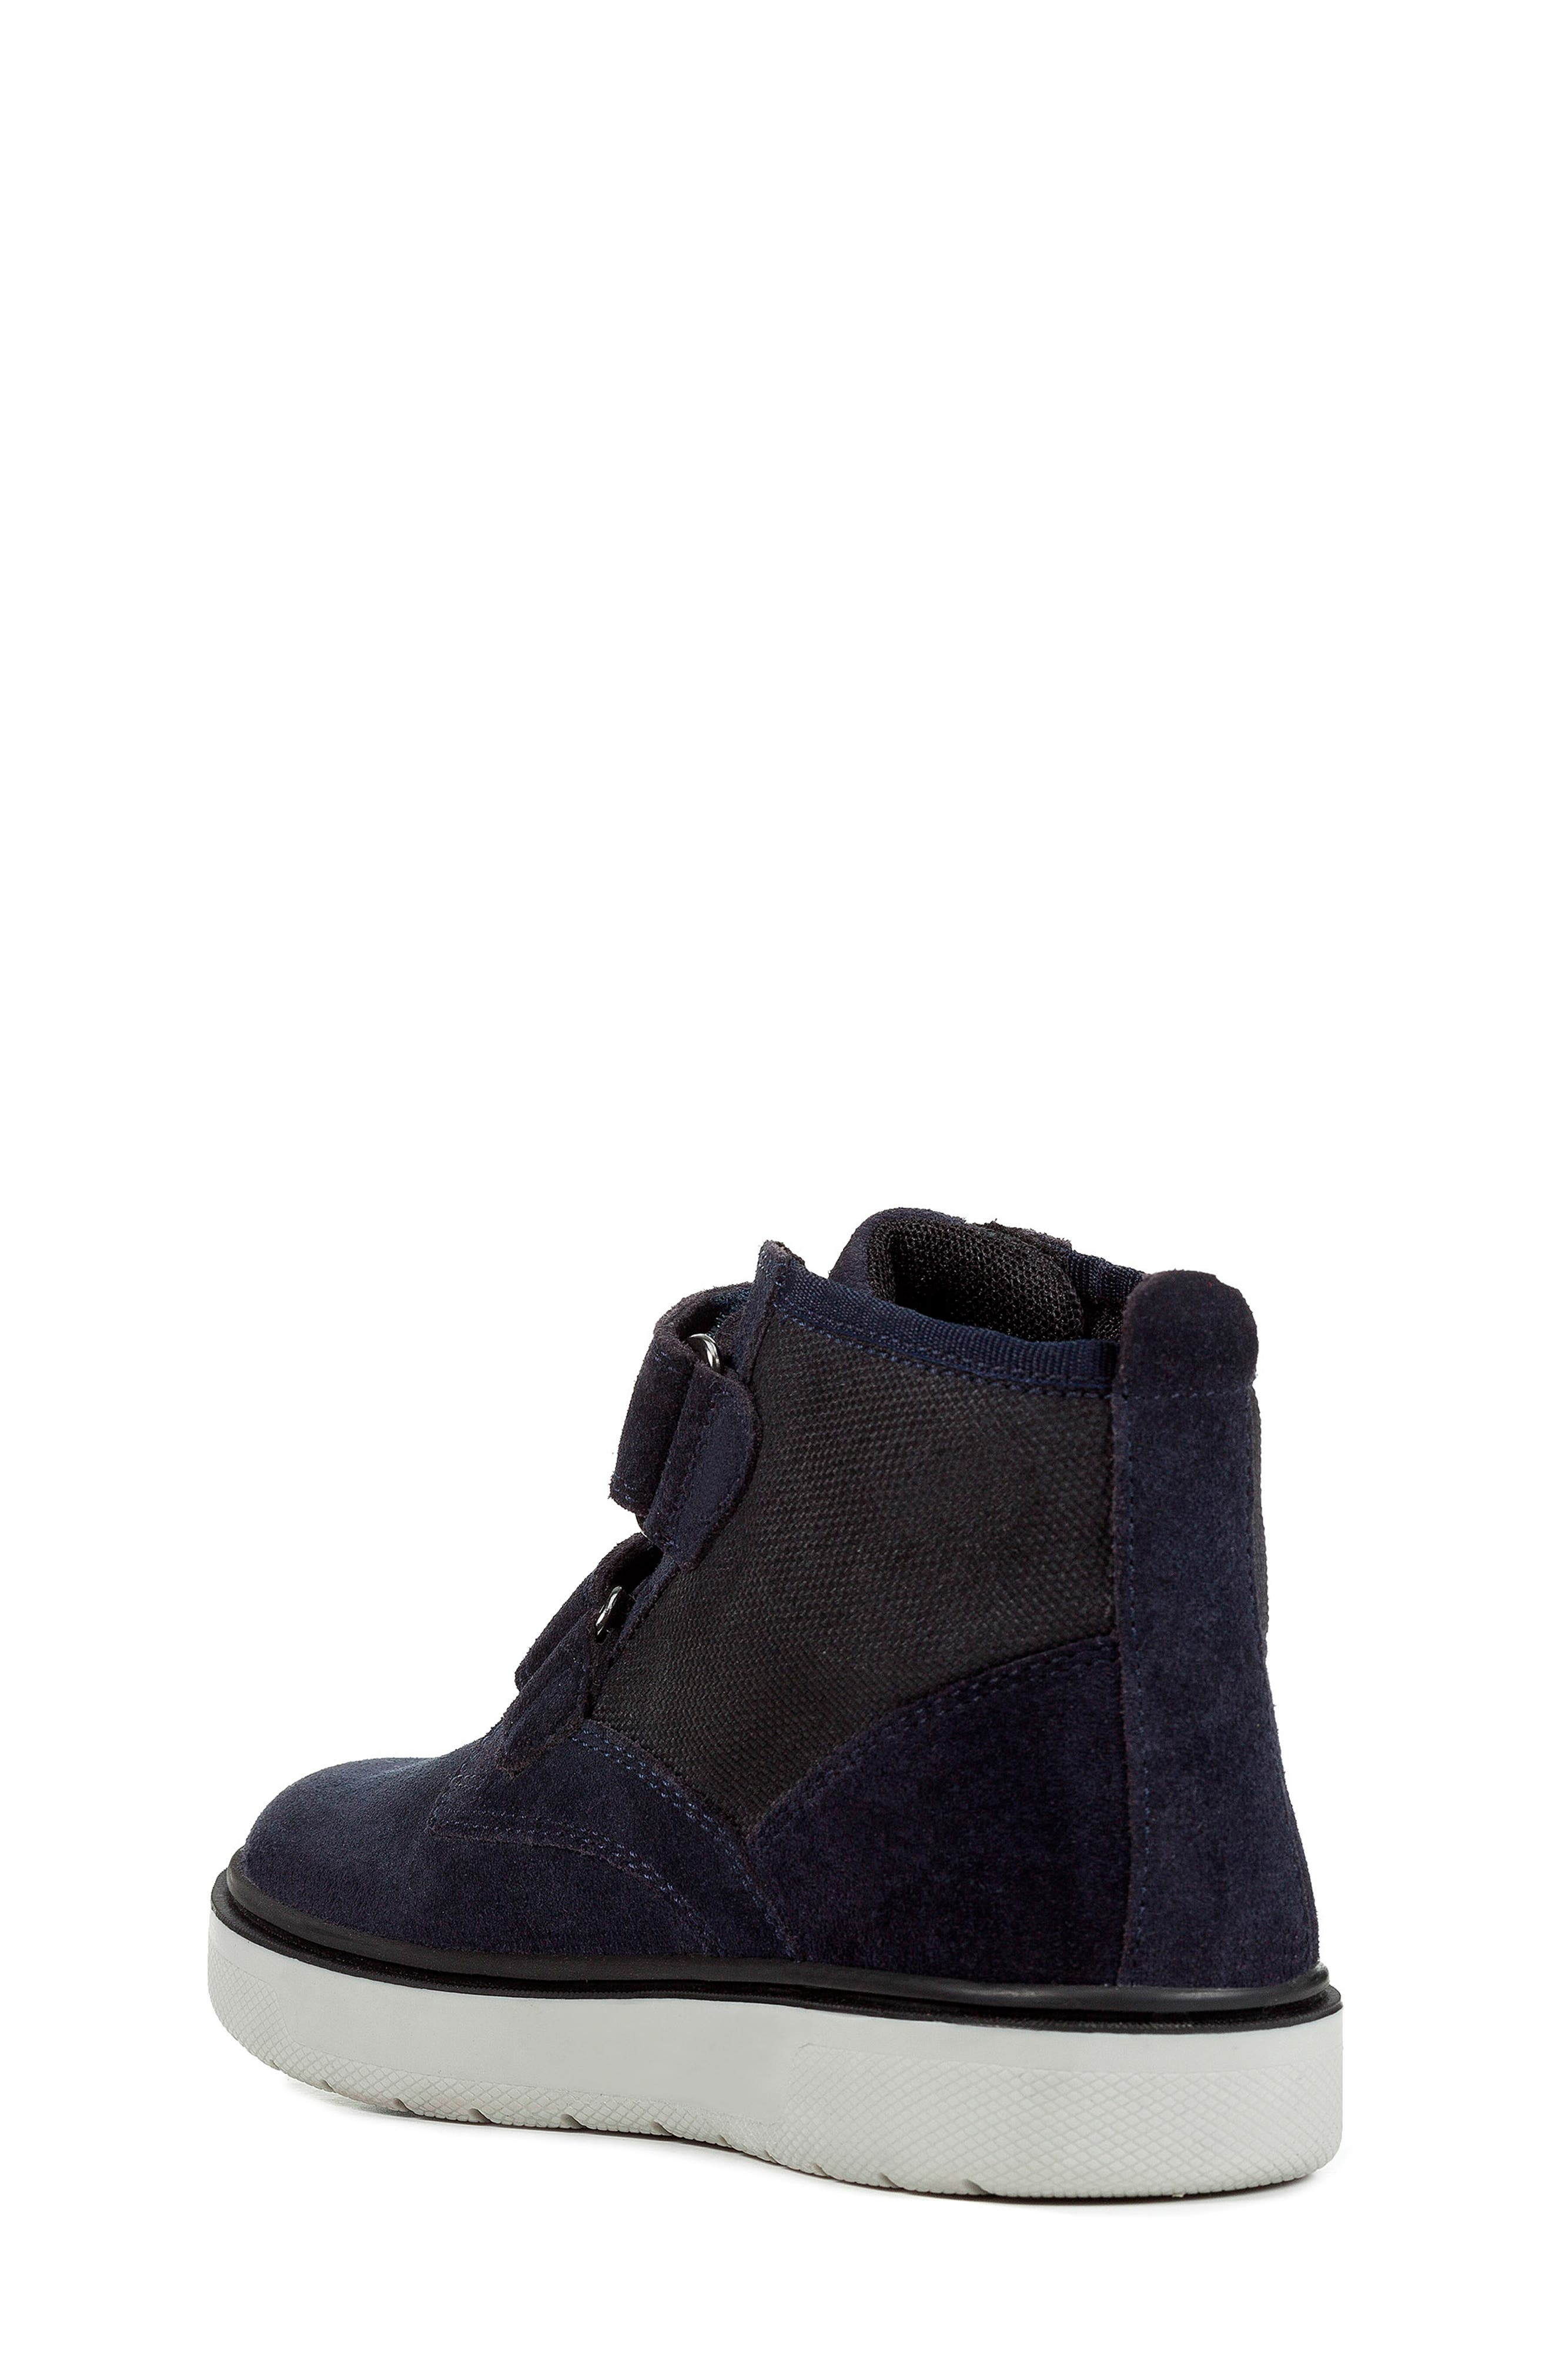 Riddock High Top Sneaker,                             Alternate thumbnail 2, color,                             NAVY/GREY